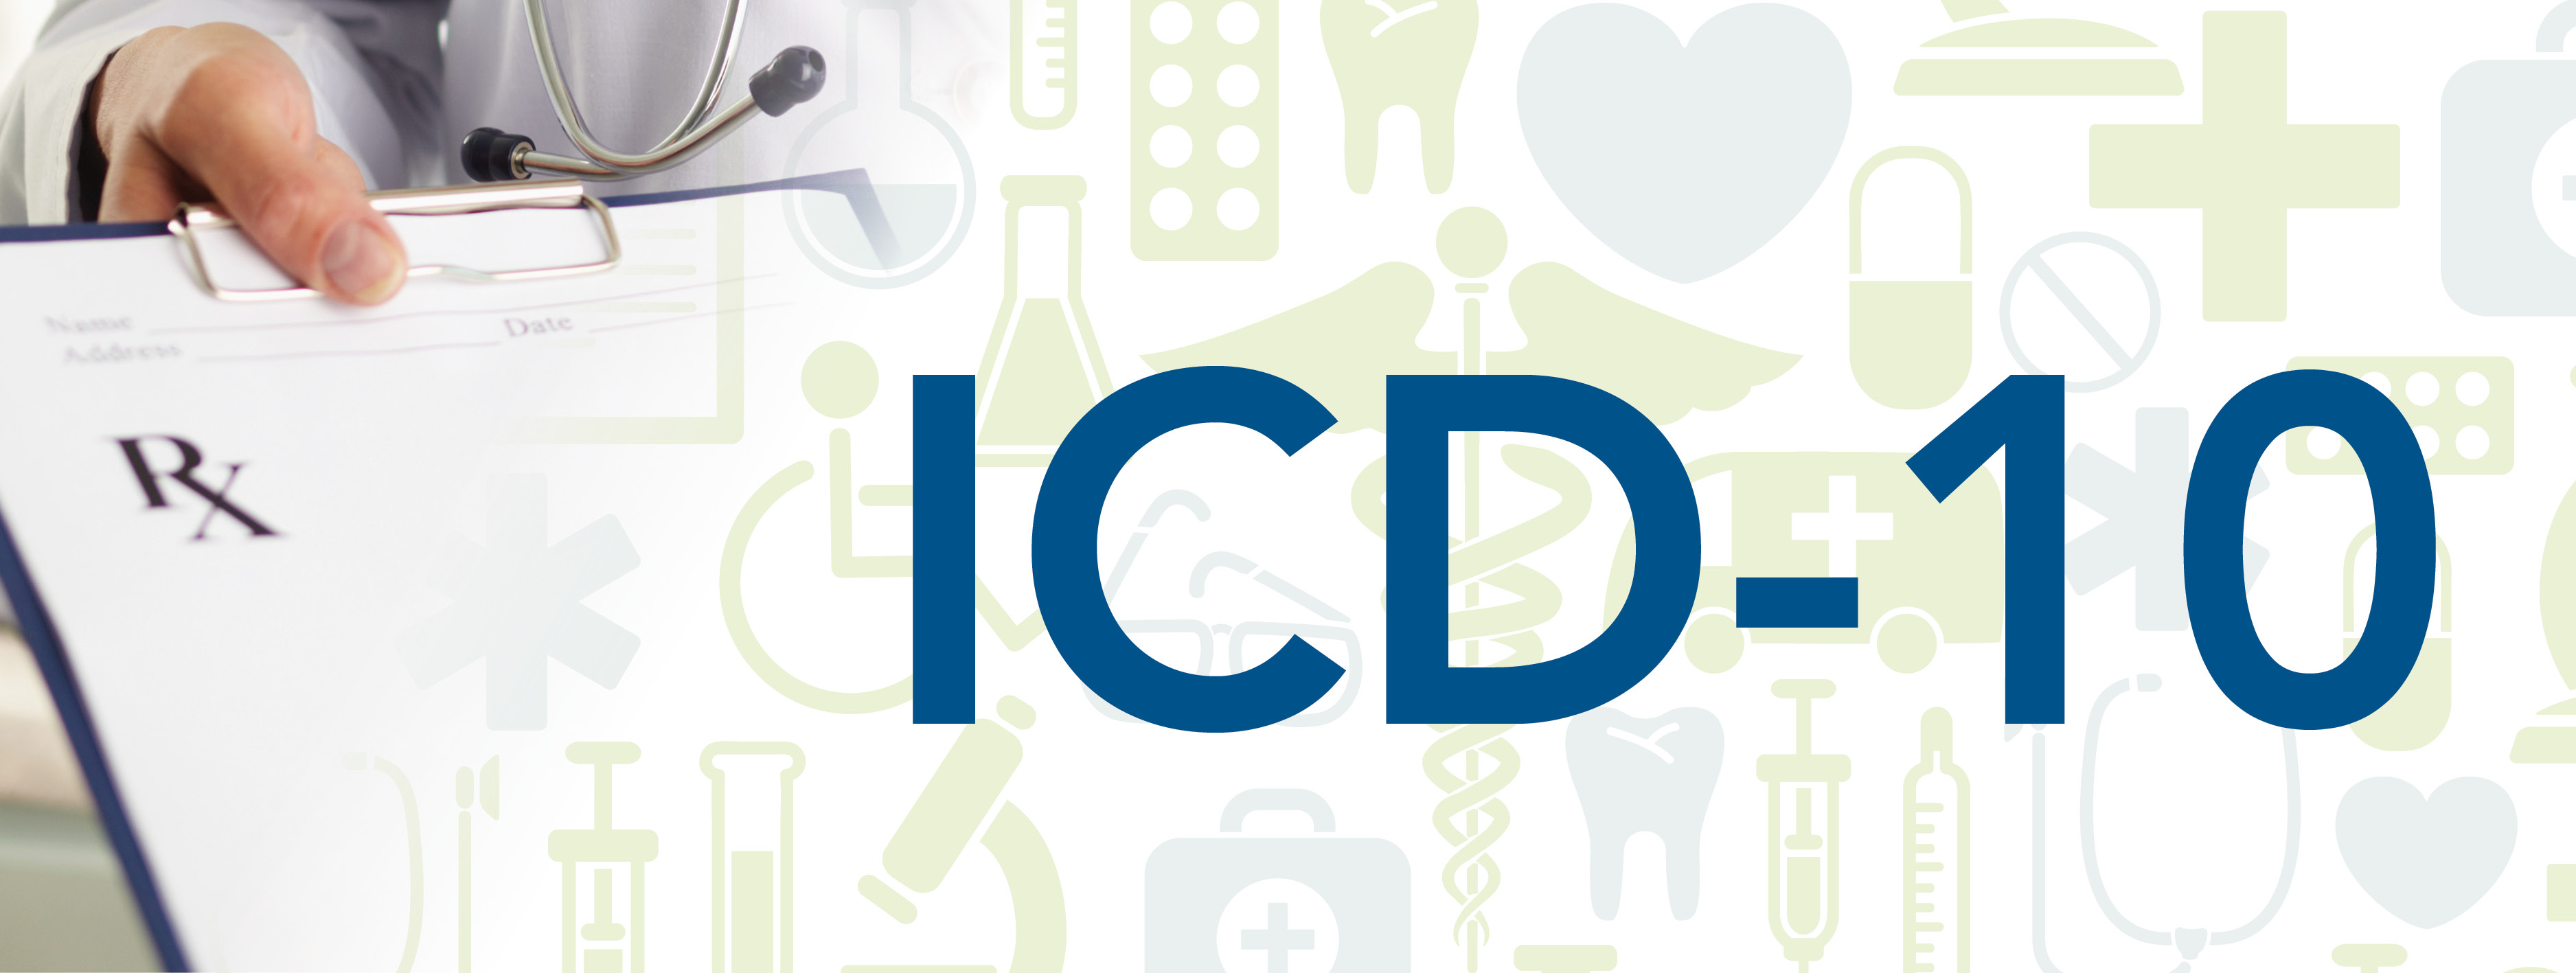 Orthocor Medical Orthocor Embracing The New Icd 10 System